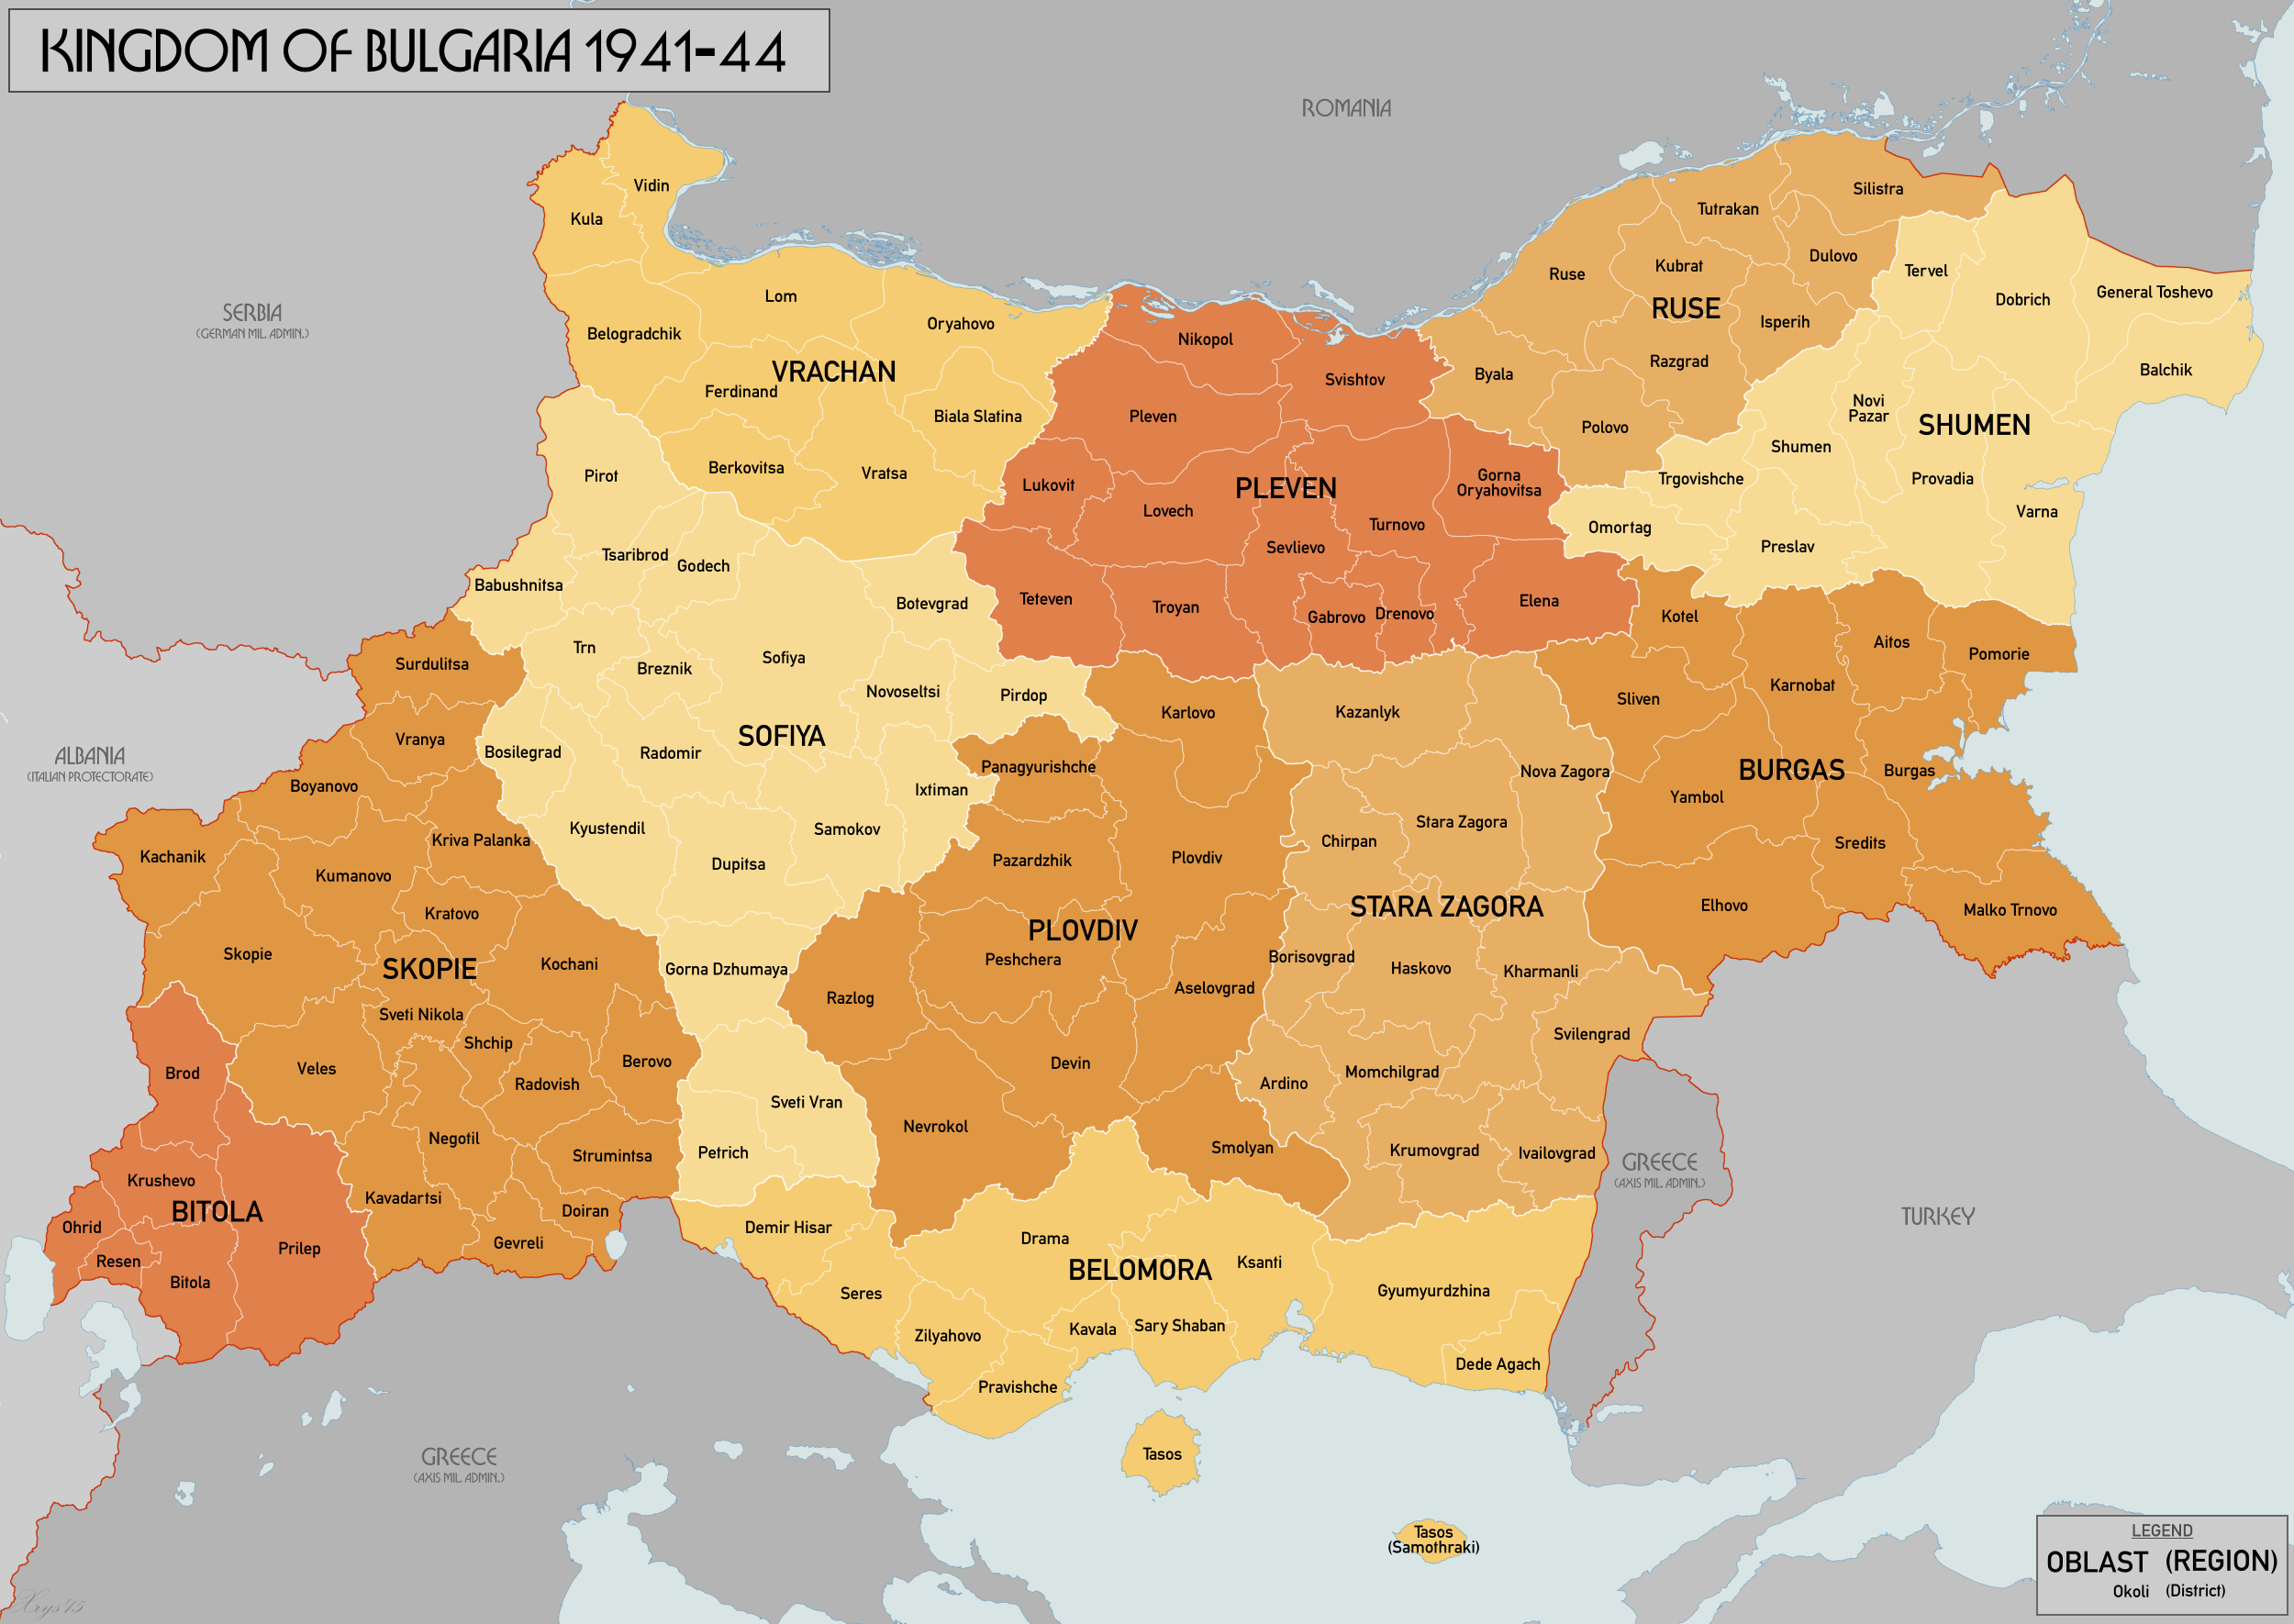 the value profile of bulgarians according Latest news and information from the world bank and its development work in bulgaria access bulgaria's economy facts, statistics, project information, development research from experts and latest news.